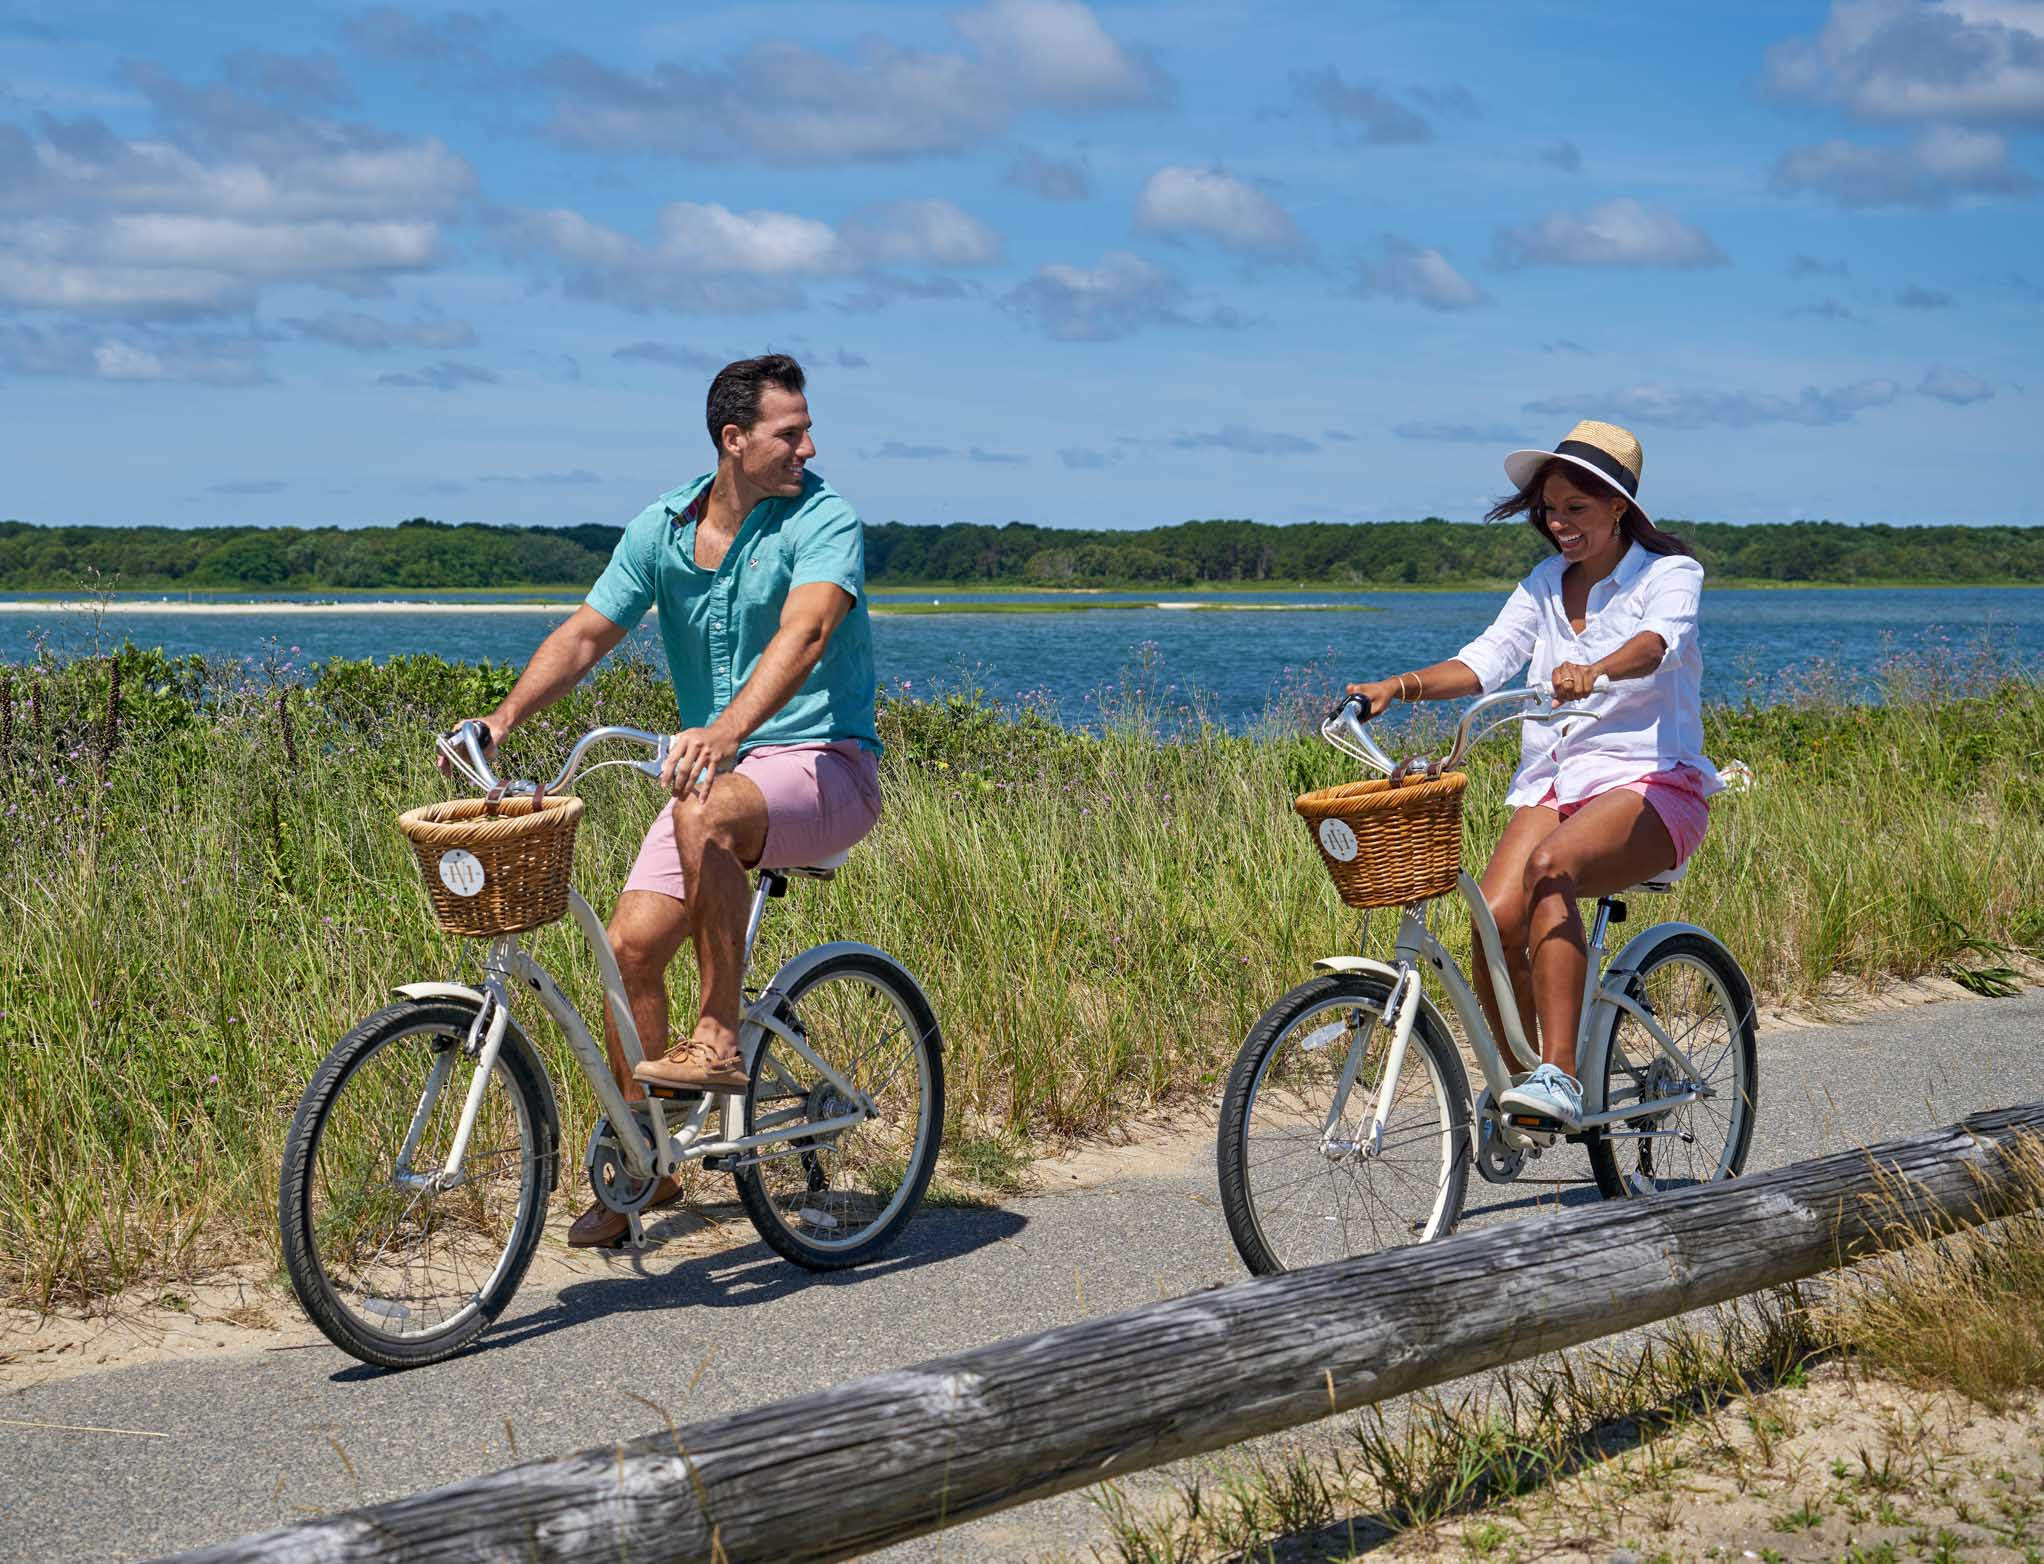 Couple riding bikes by the shore together